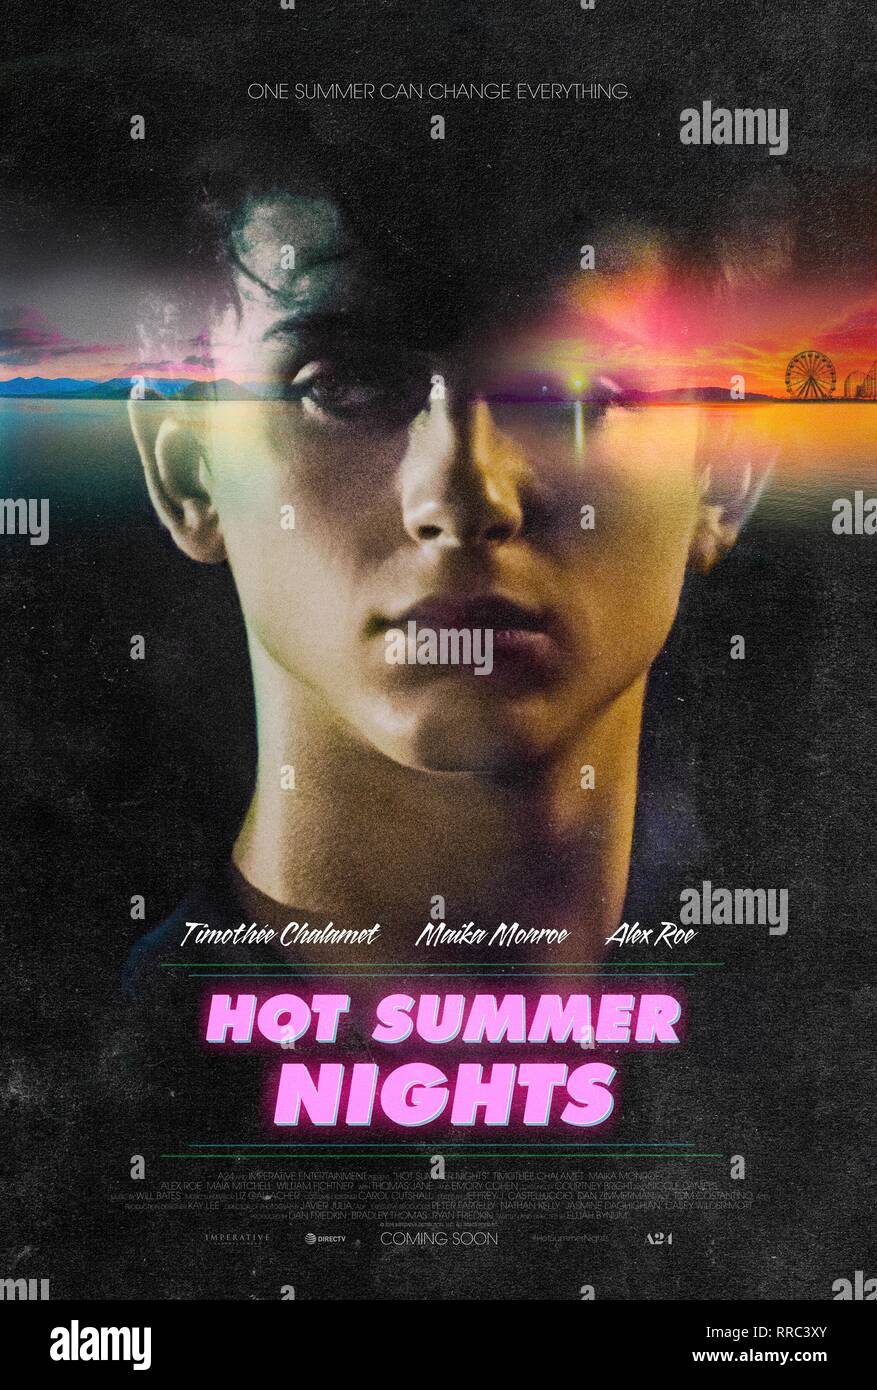 HOT SUMMER NIGHTS, TIMOTHEE CHALAMET POSTER, 2017 - Stock Image